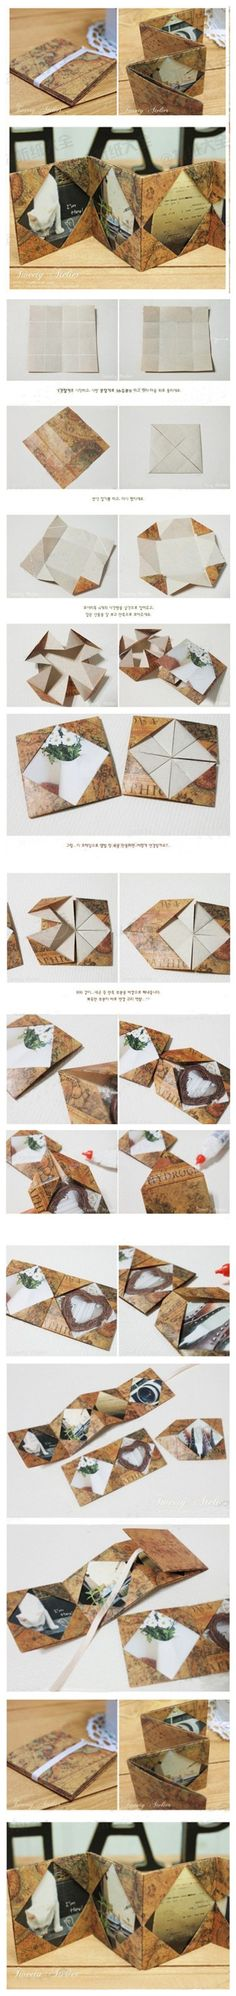 Step-by-step instructions for construction of multi-page origami book